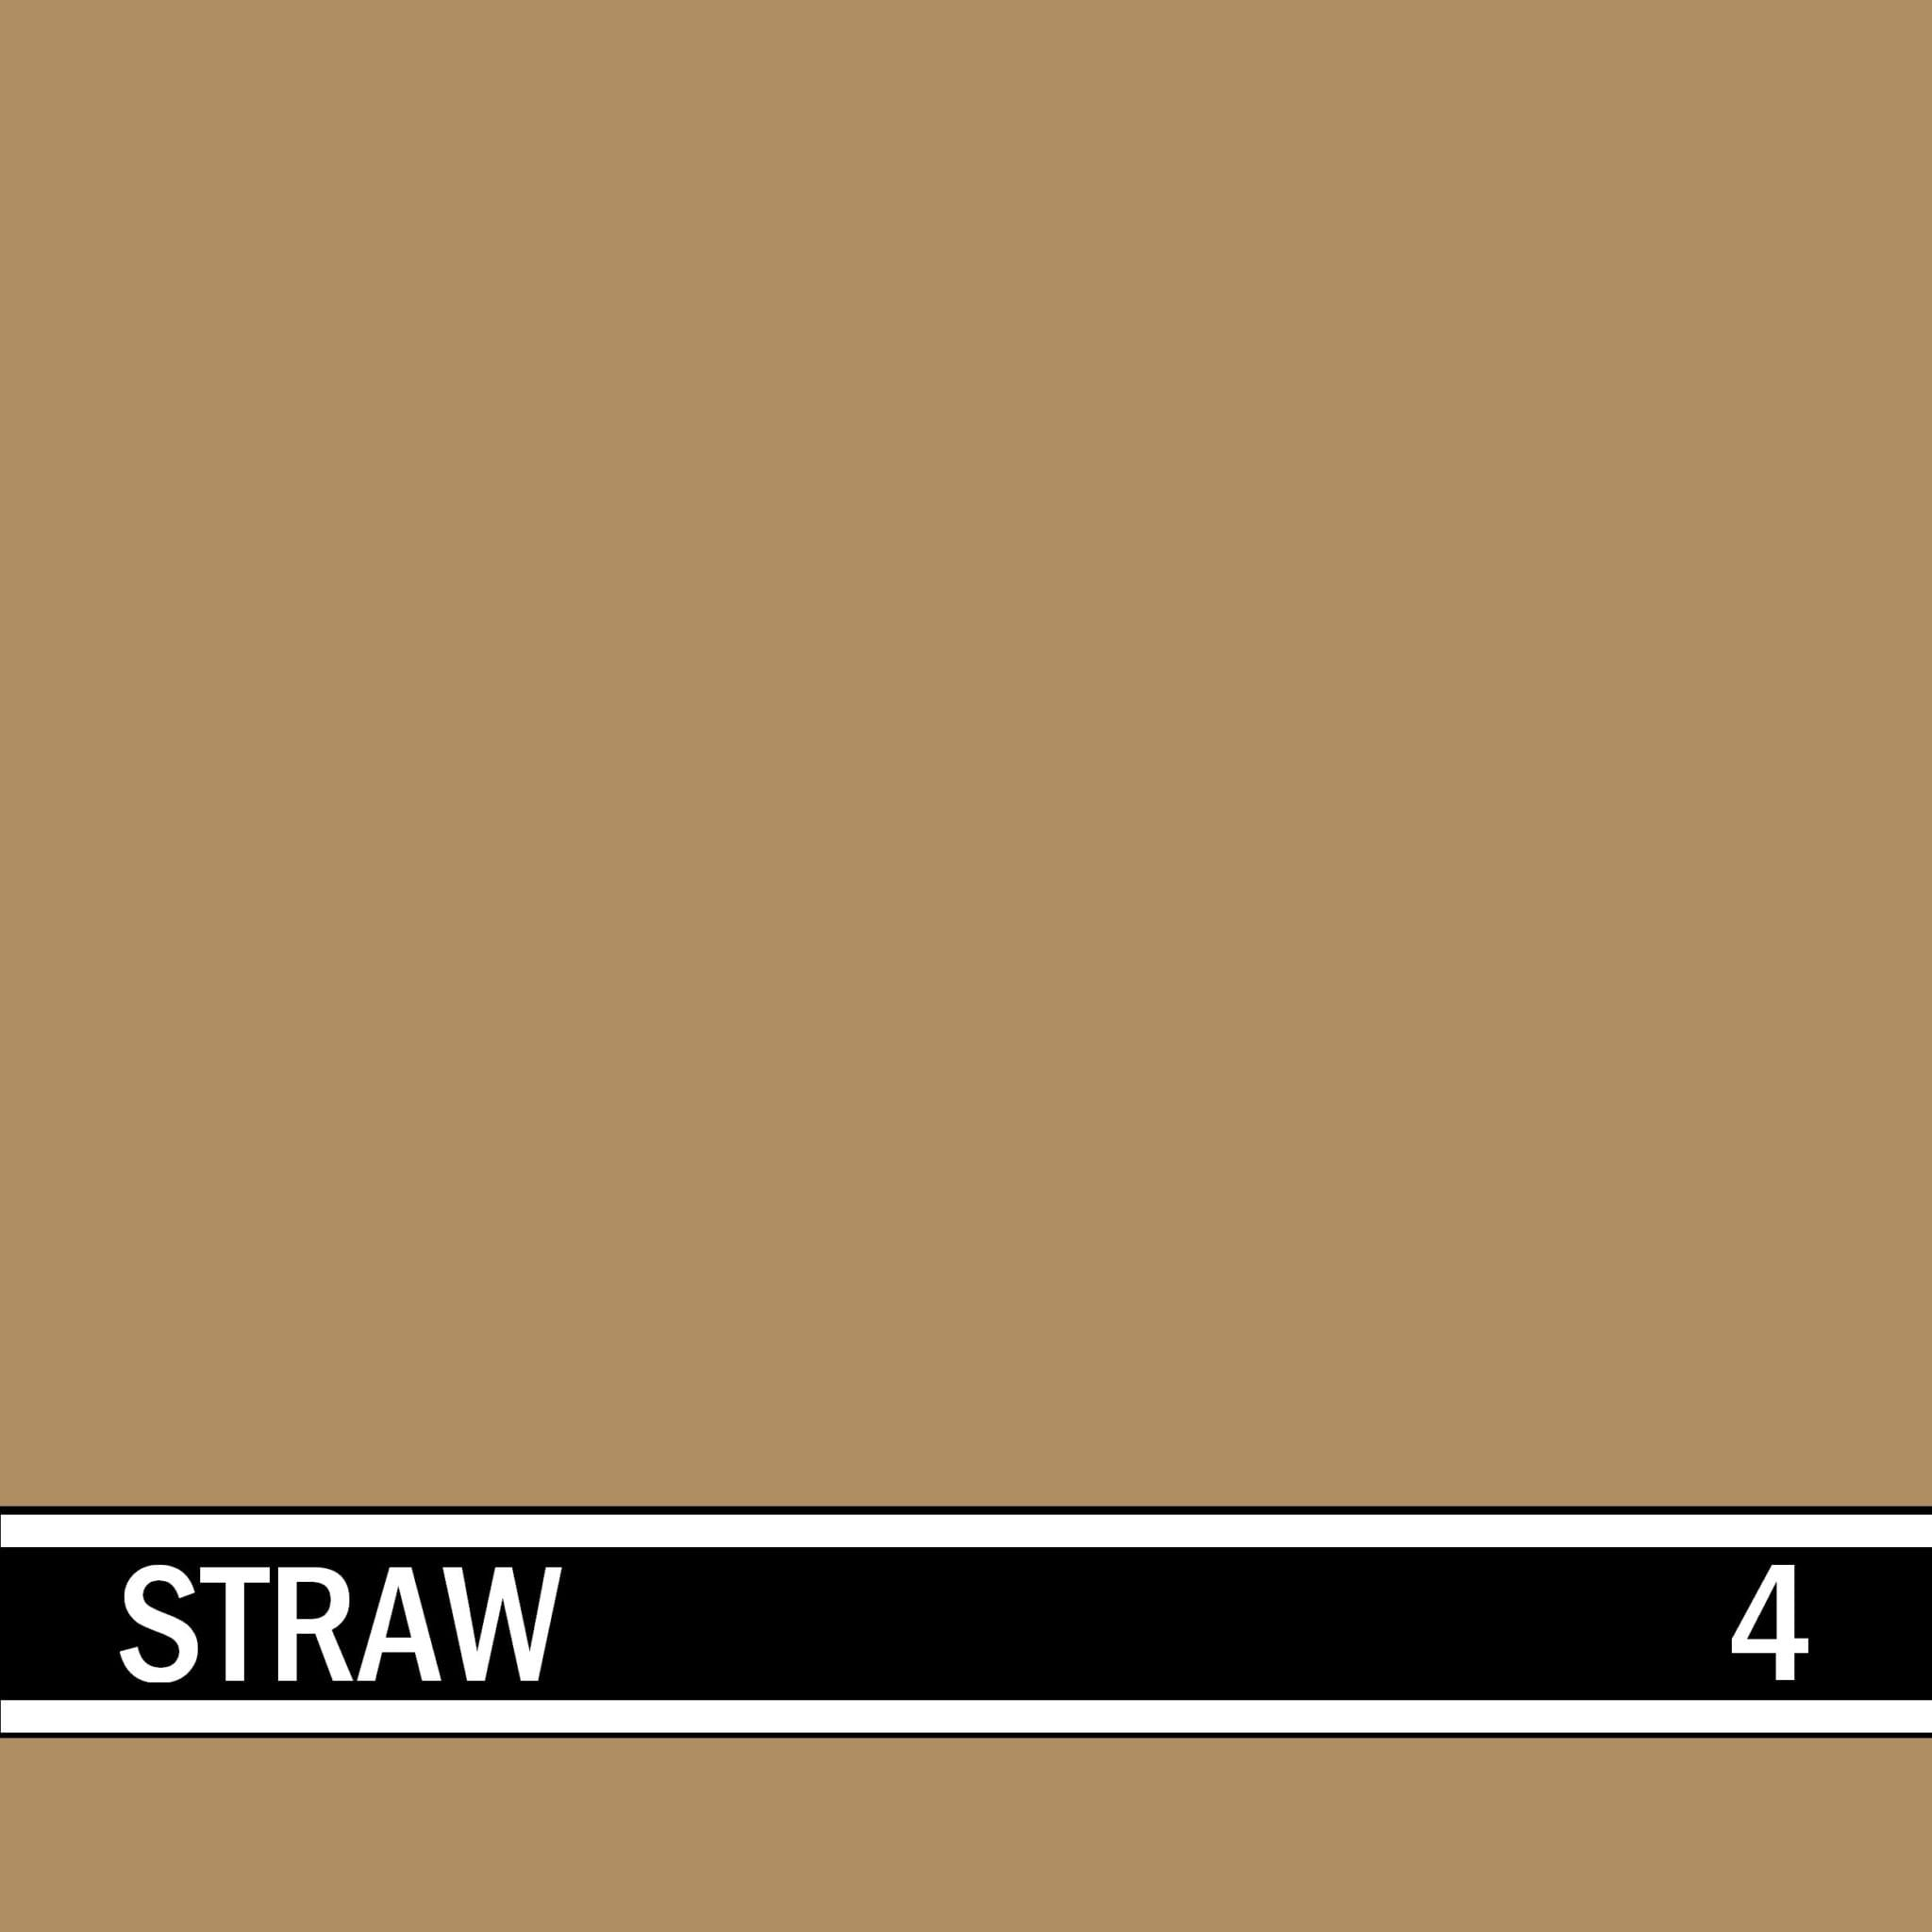 Straw integral concrete color for stamped concrete and decorative colored concrete